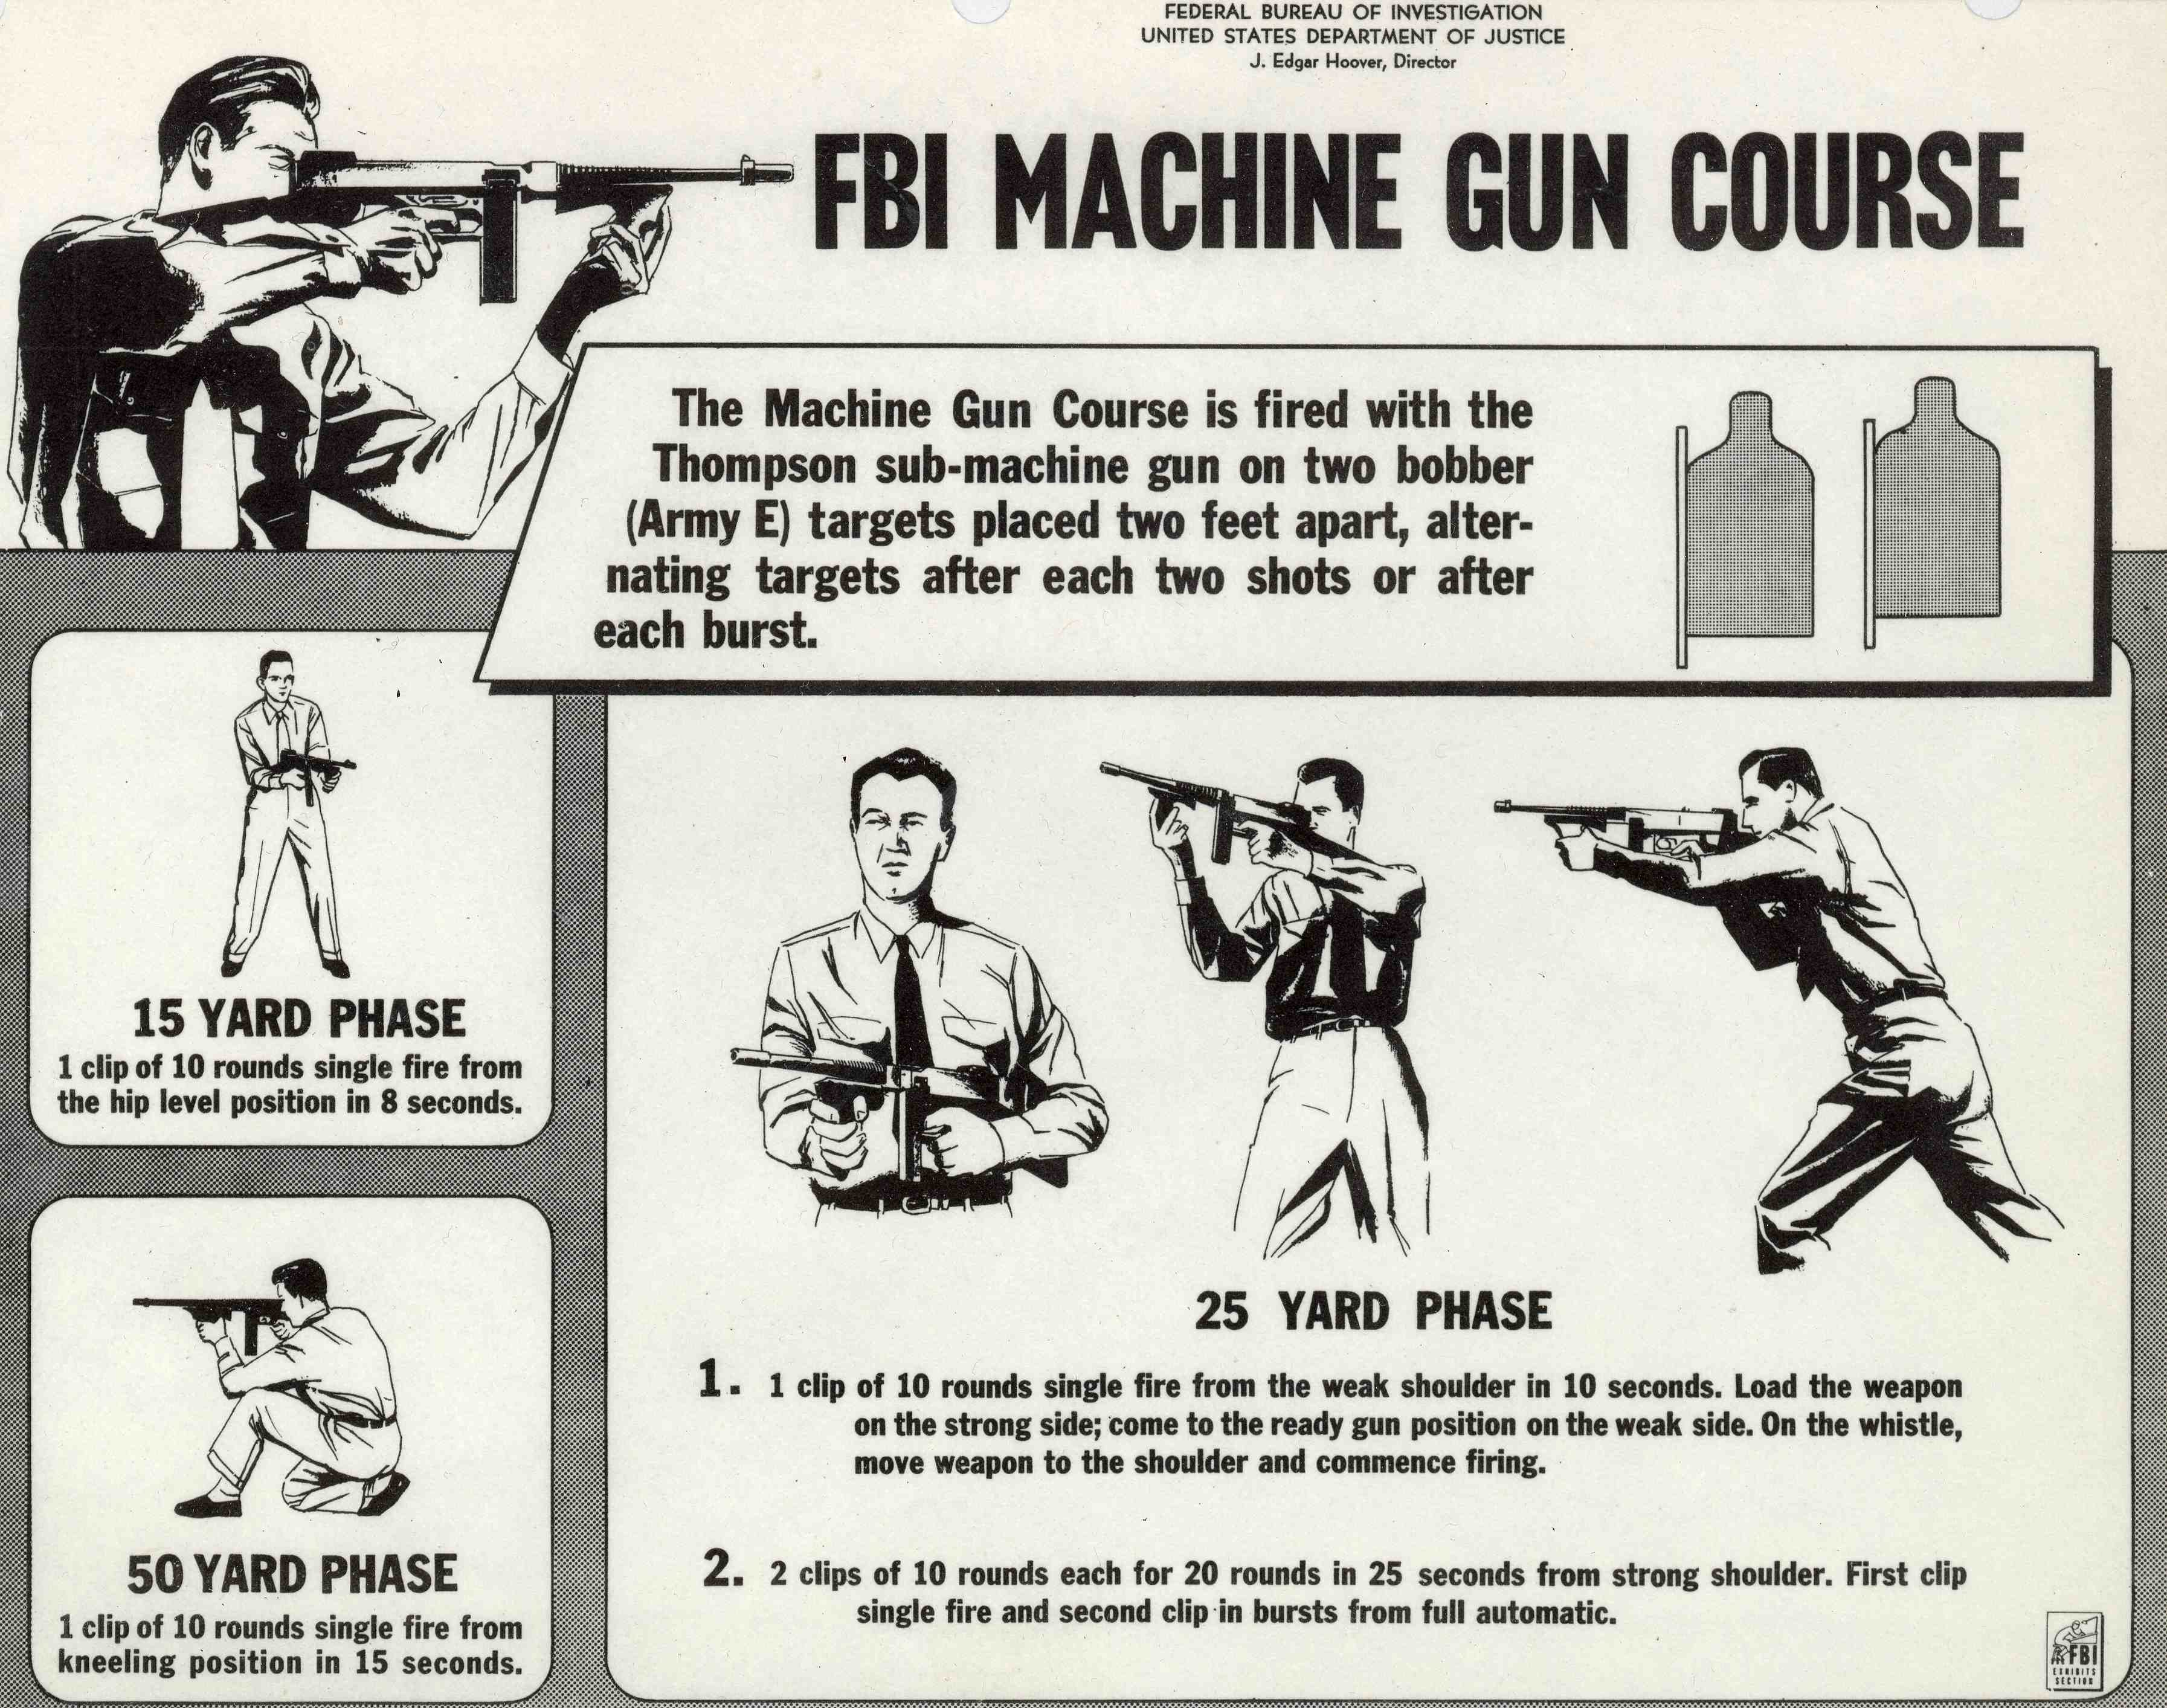 FBI machine gun course description image